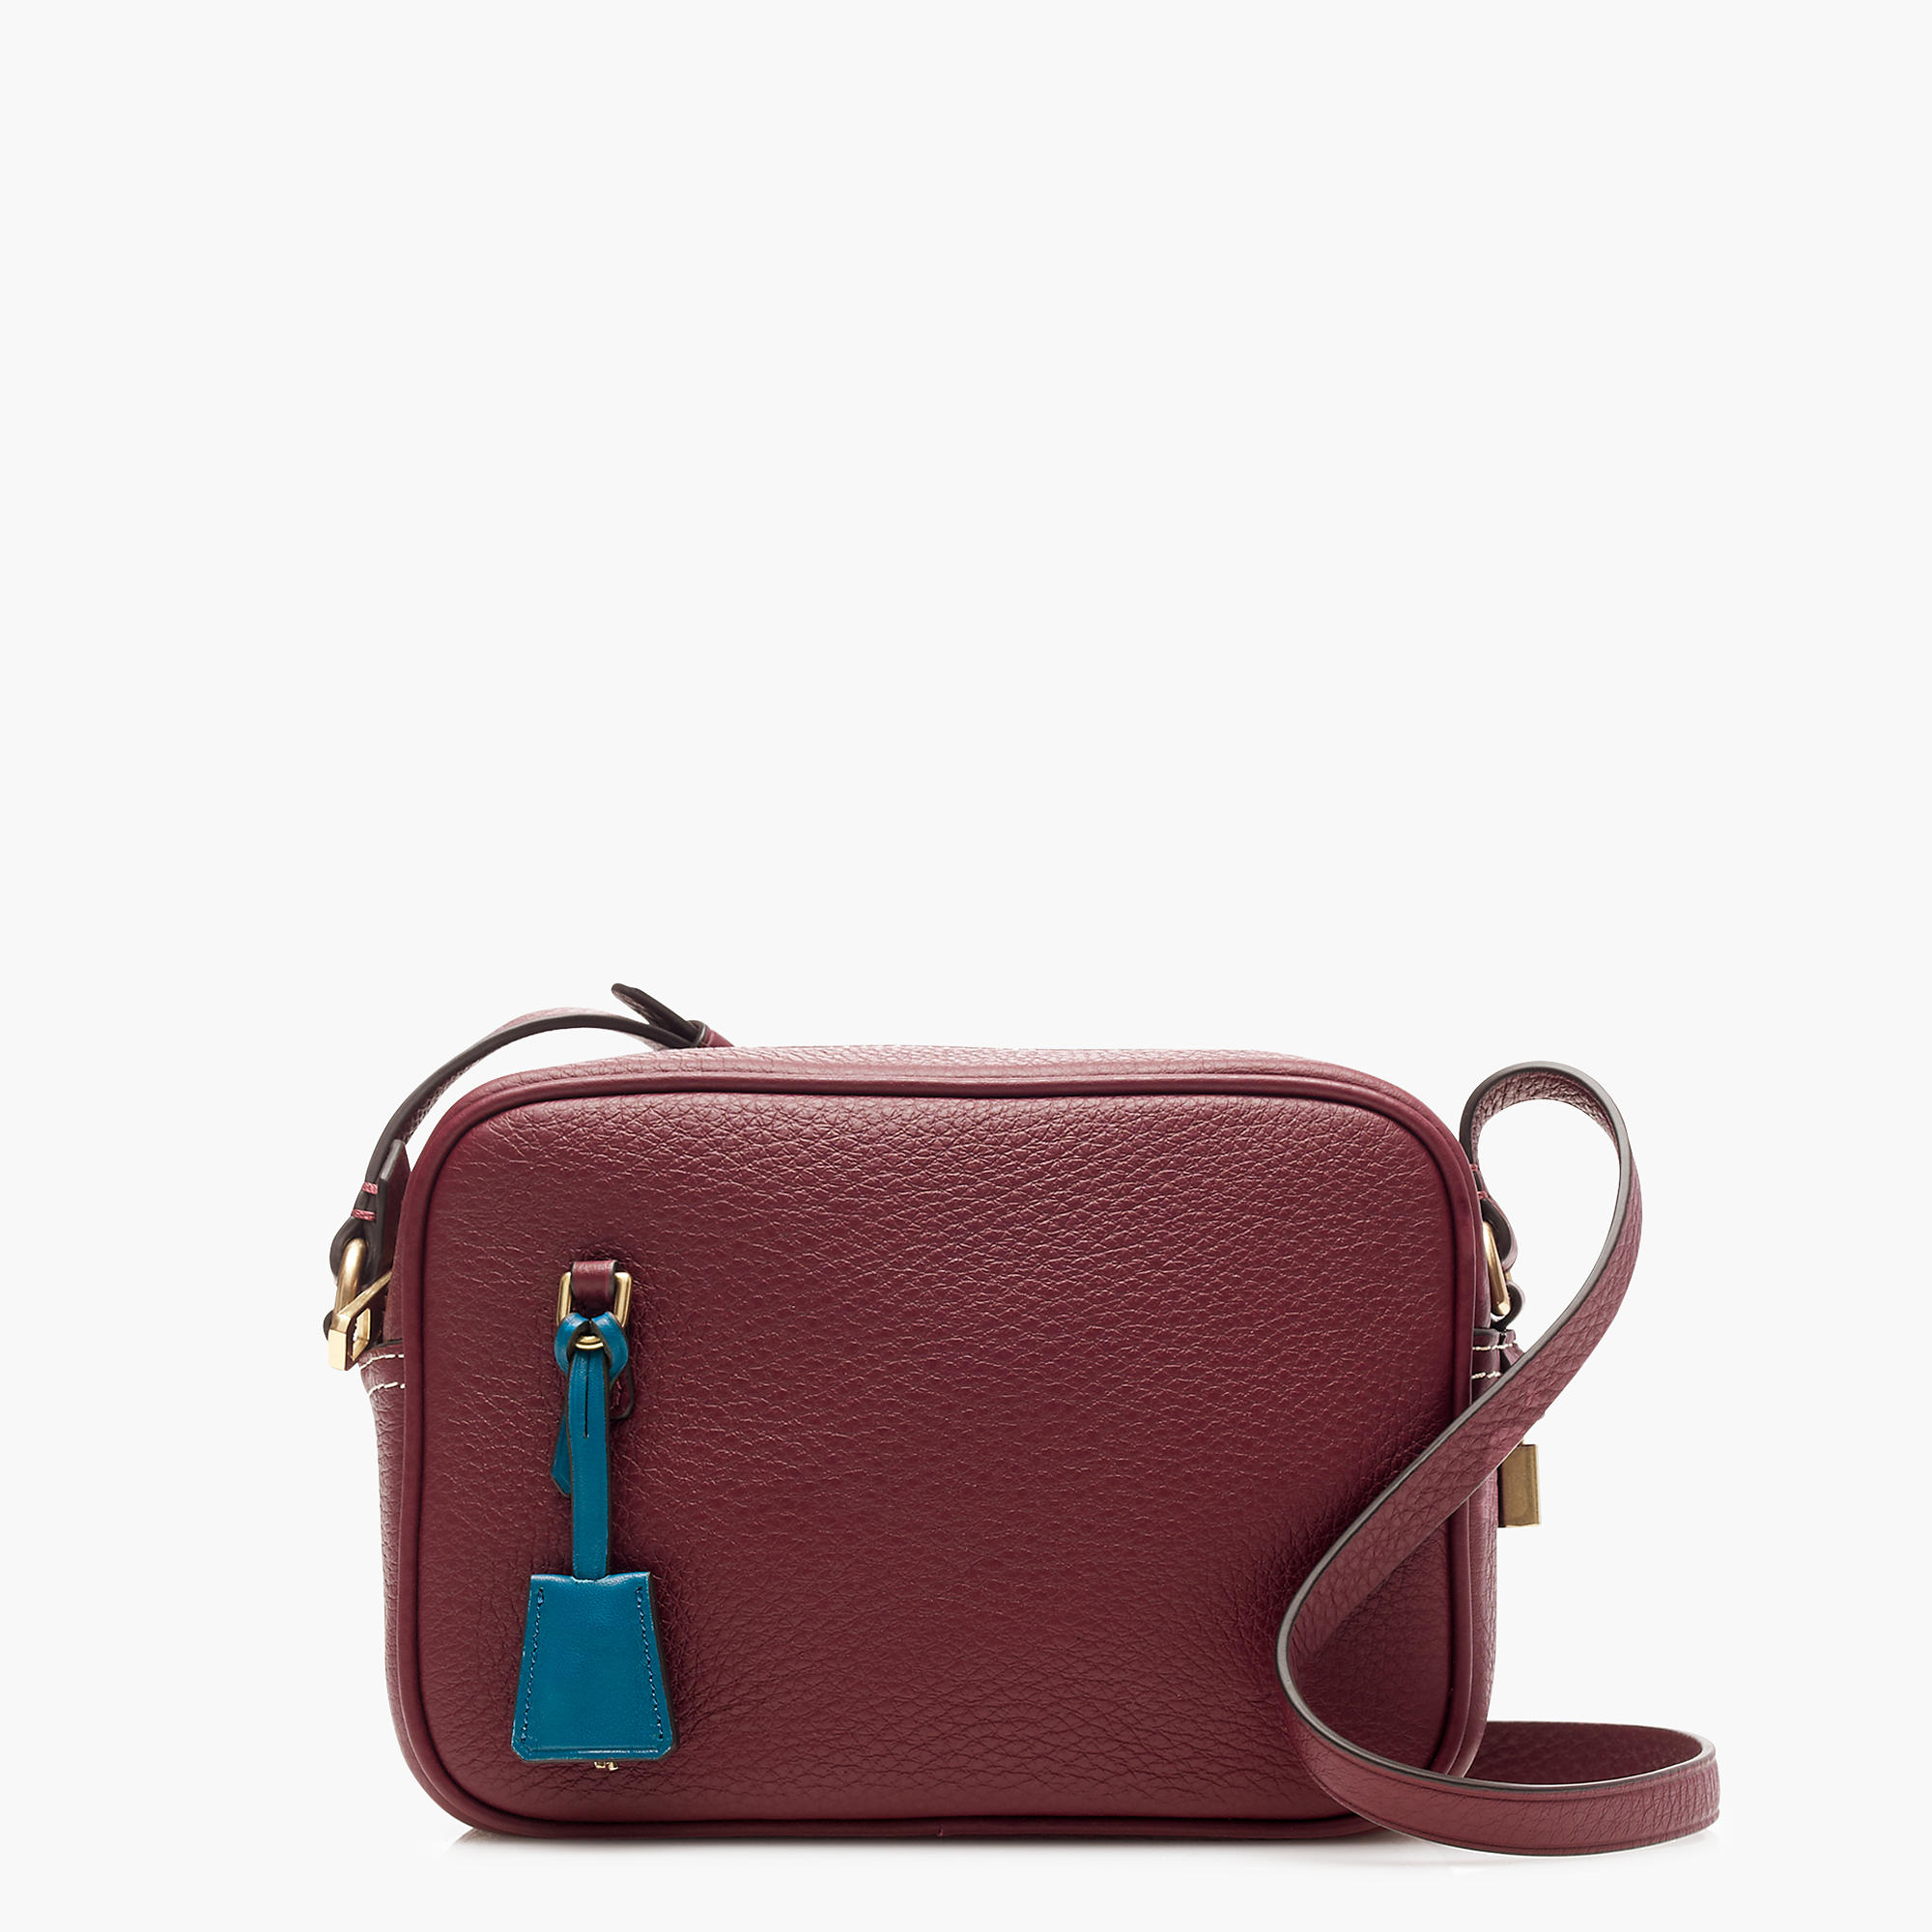 J.Crew Signet Bags in Italian Leather, Dark Wine